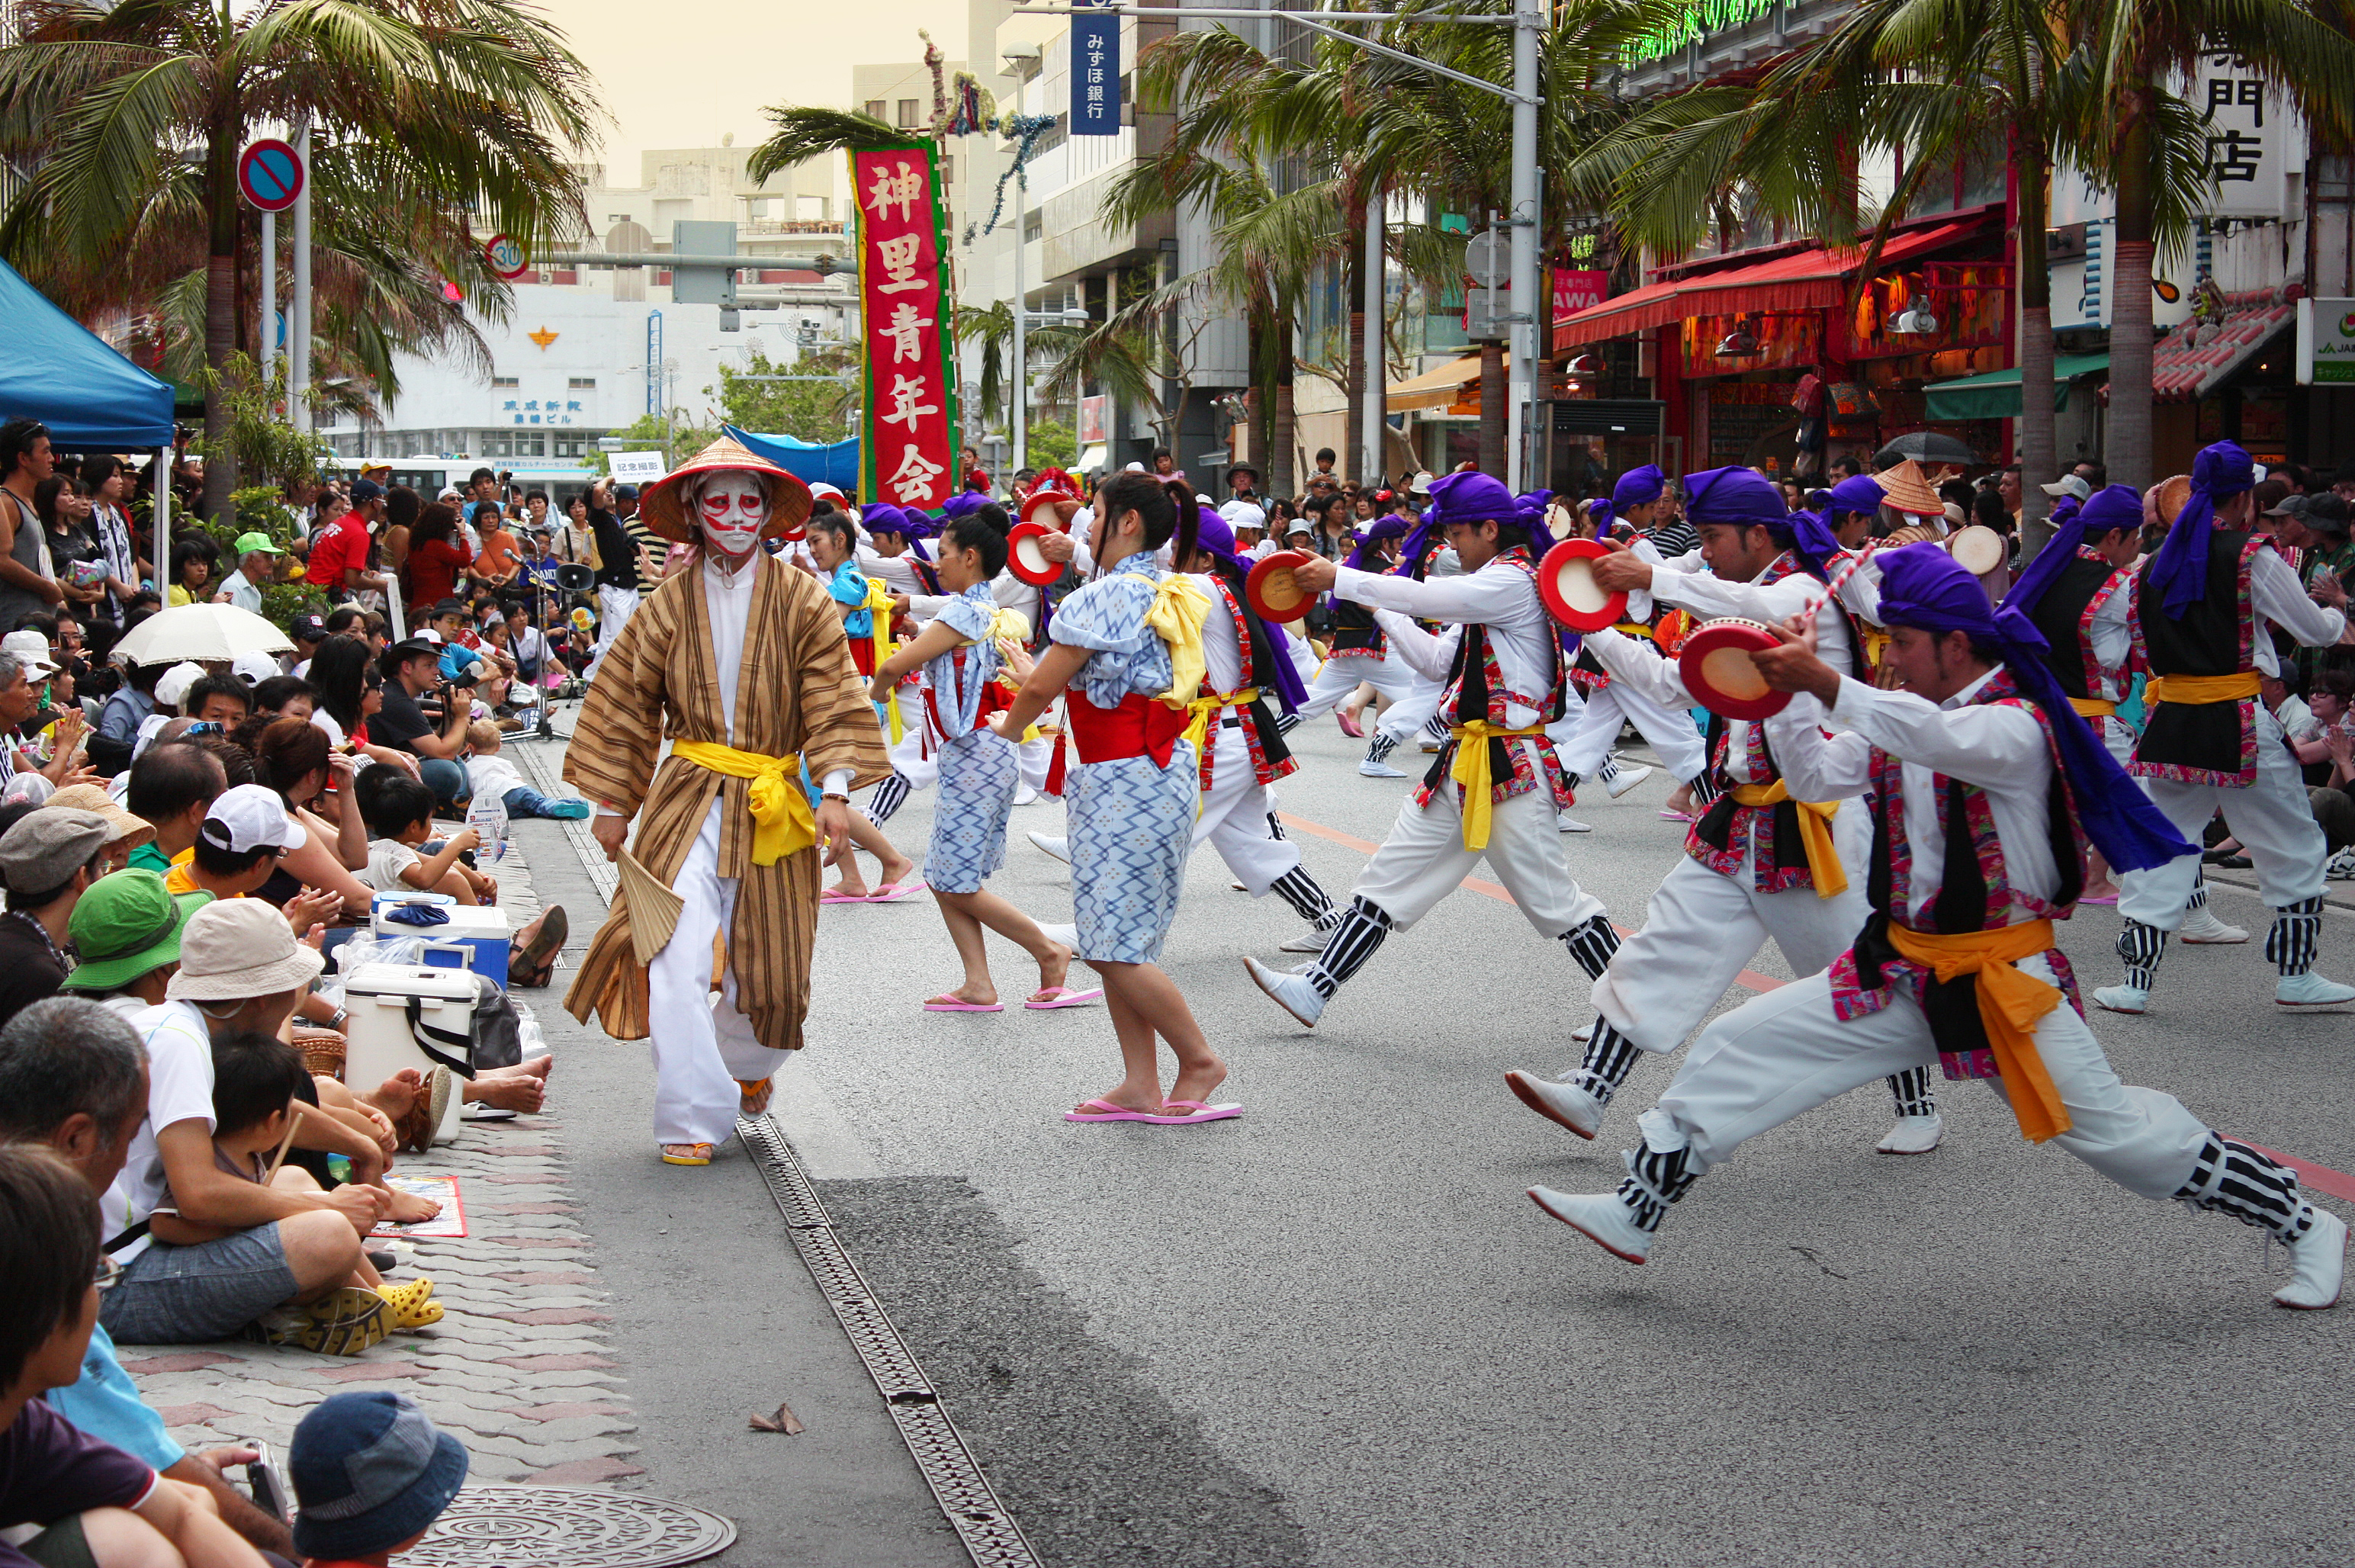 okinawa culture Remembering ryukyu not many people outside japan know much about okinawa other than it's the southernmost territory of japan but prior to becoming a prefecture, okinawa wasn't always a part.